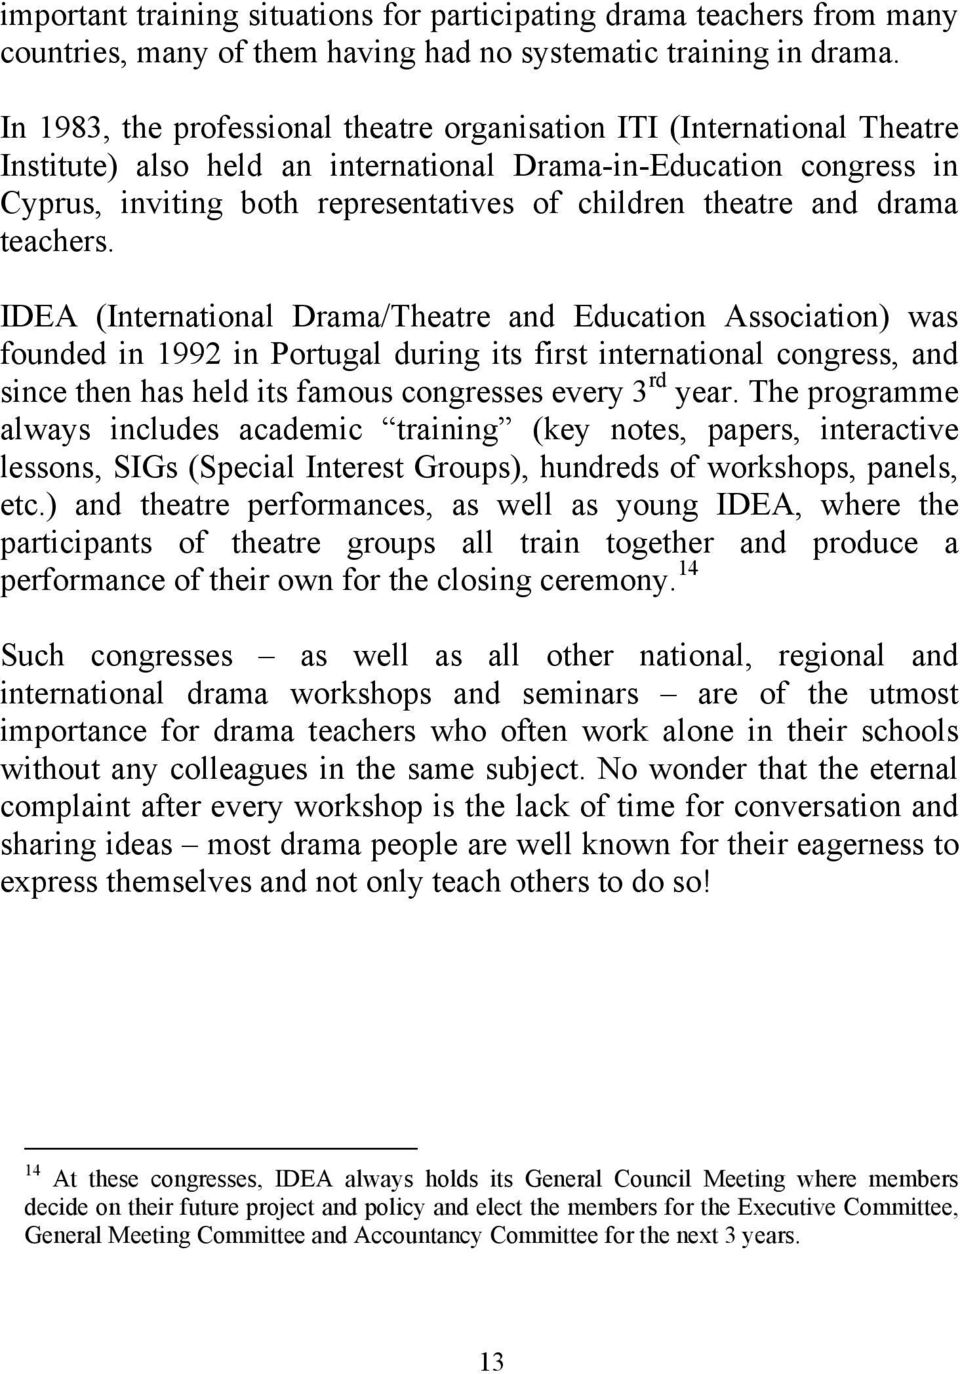 theatre and drama teachers.